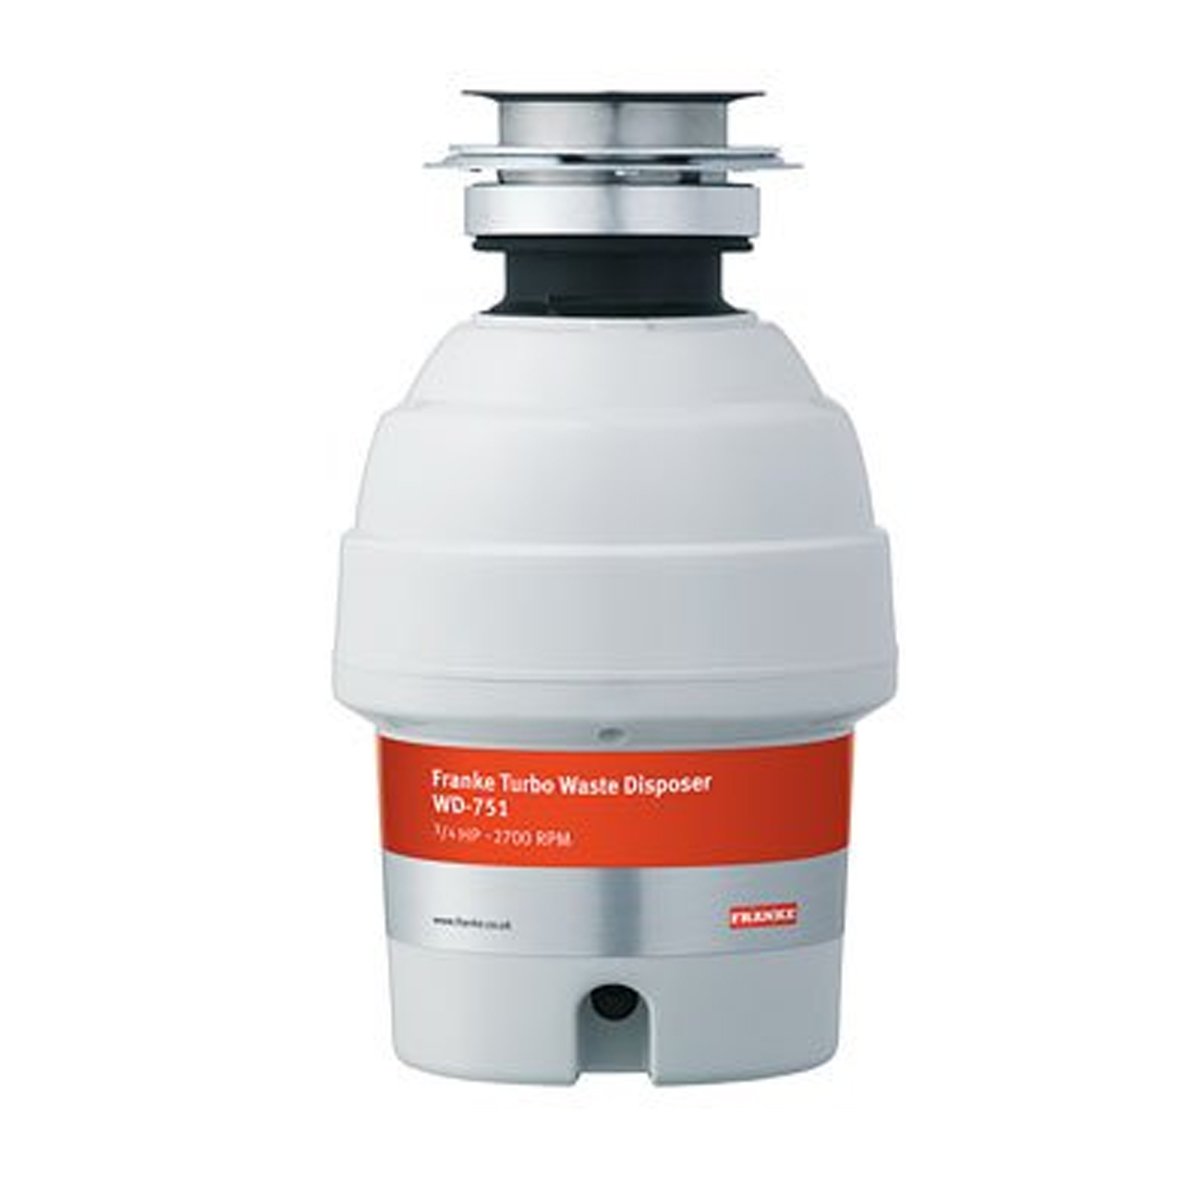 Franke WD751 Waste disposers - Waste Management